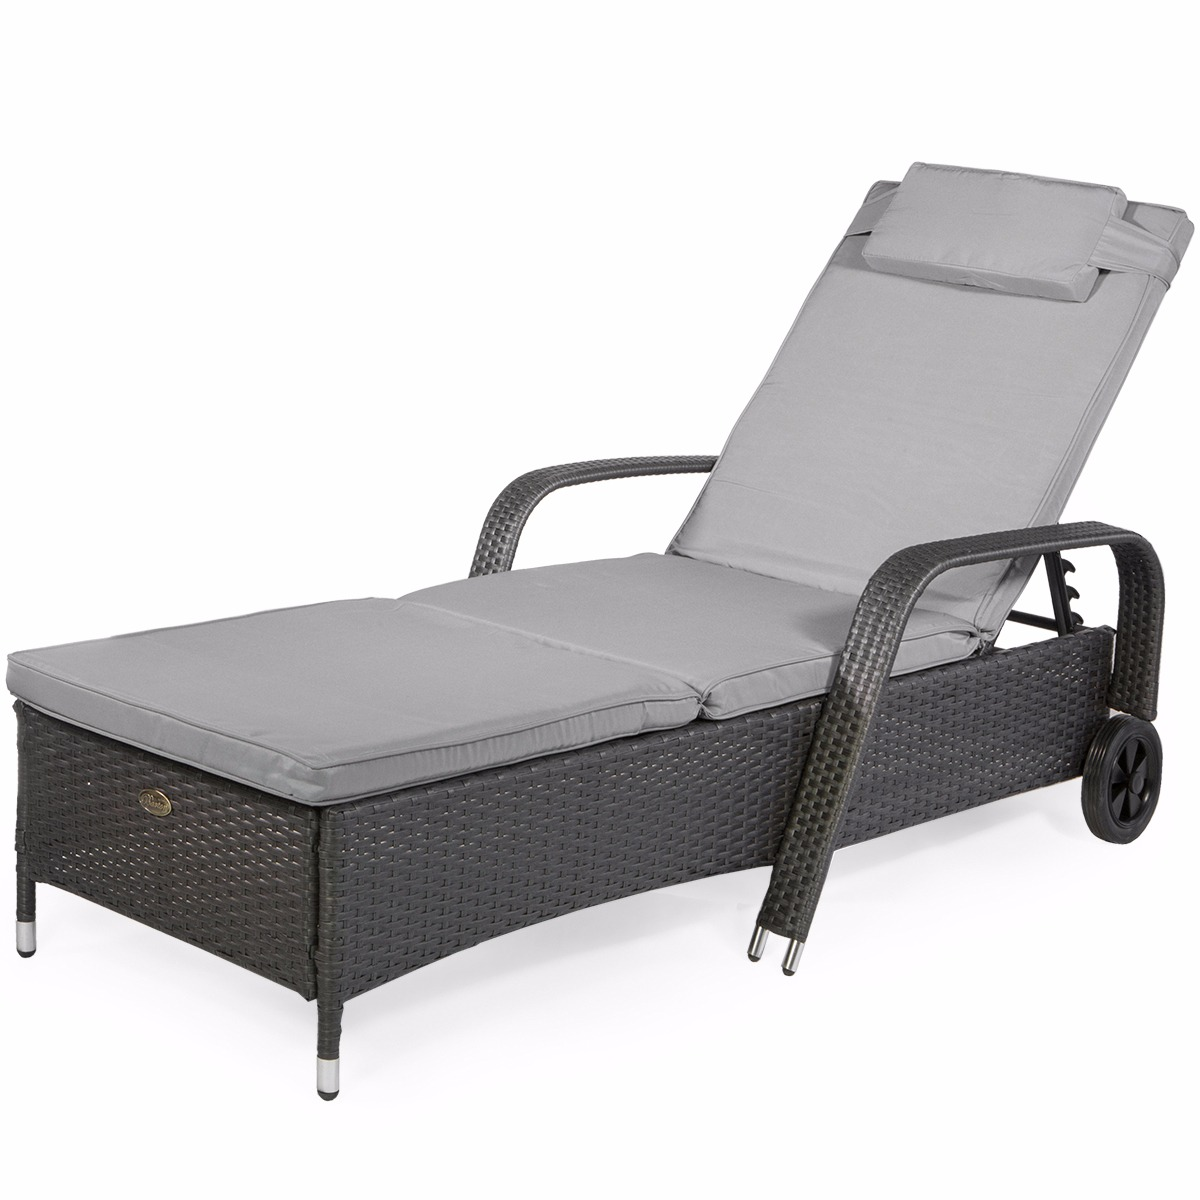 XtremepowerUS Barton Outdoor Patio Adjustable Rattan Wicker Pool Chaise  Lounge Chair With Wheels, Gray